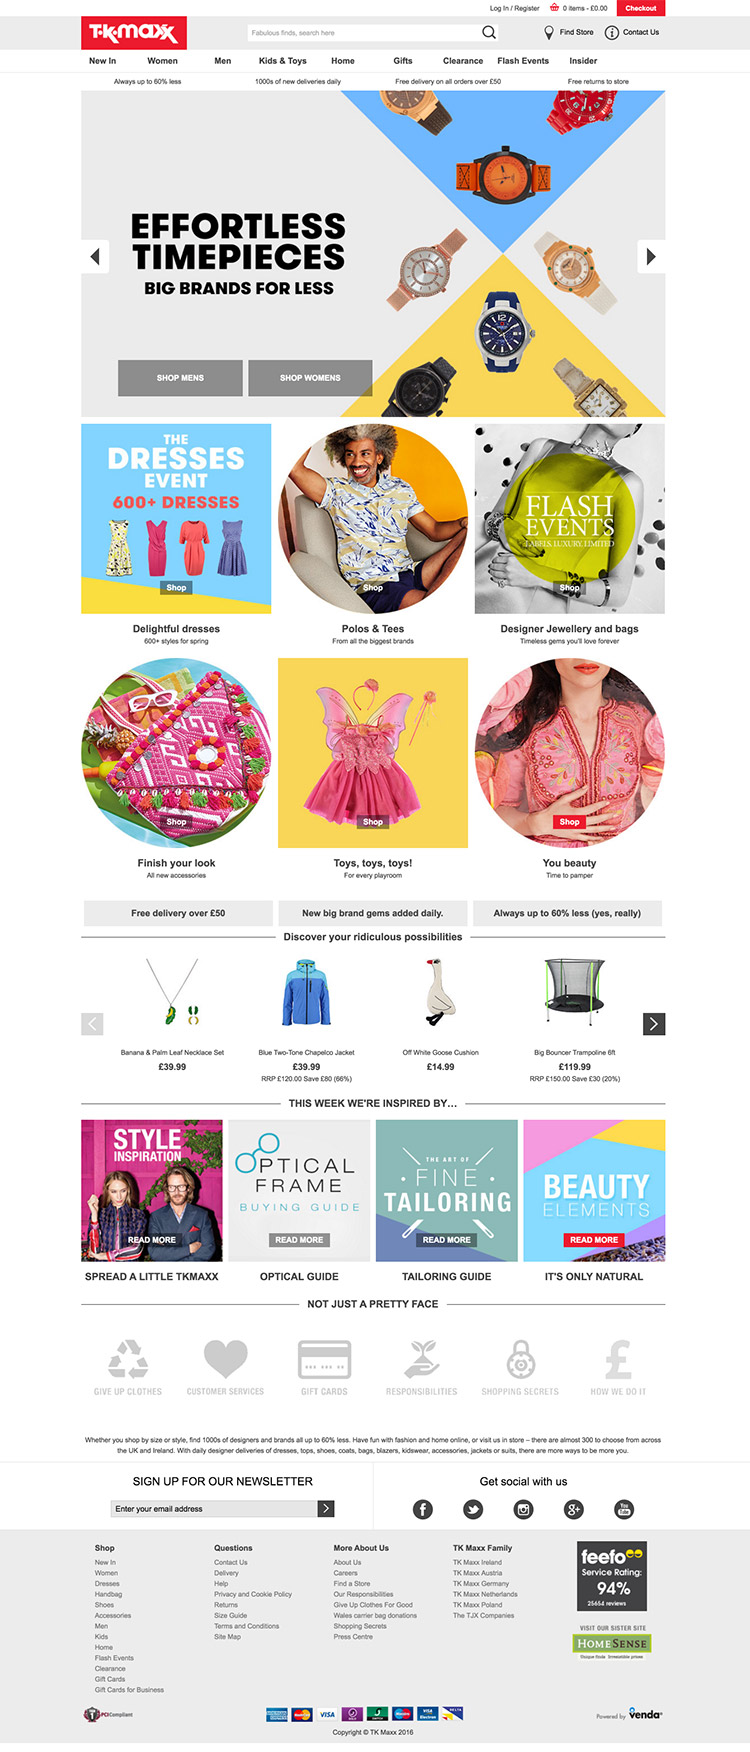 TKMaxx Homepage Design